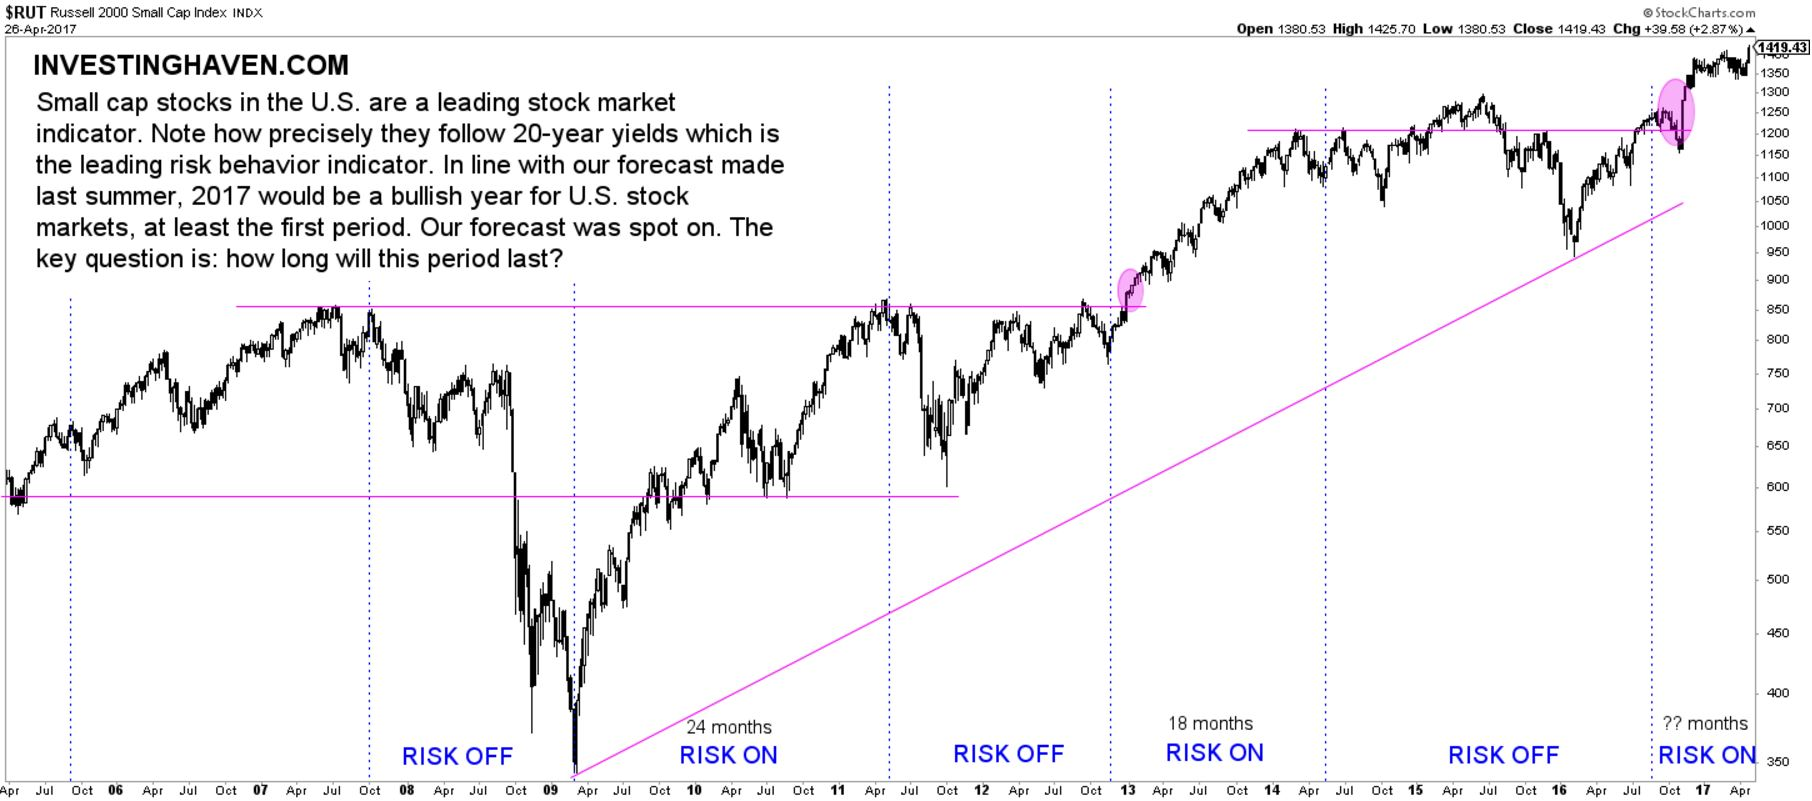 leading stock market indicator bullish